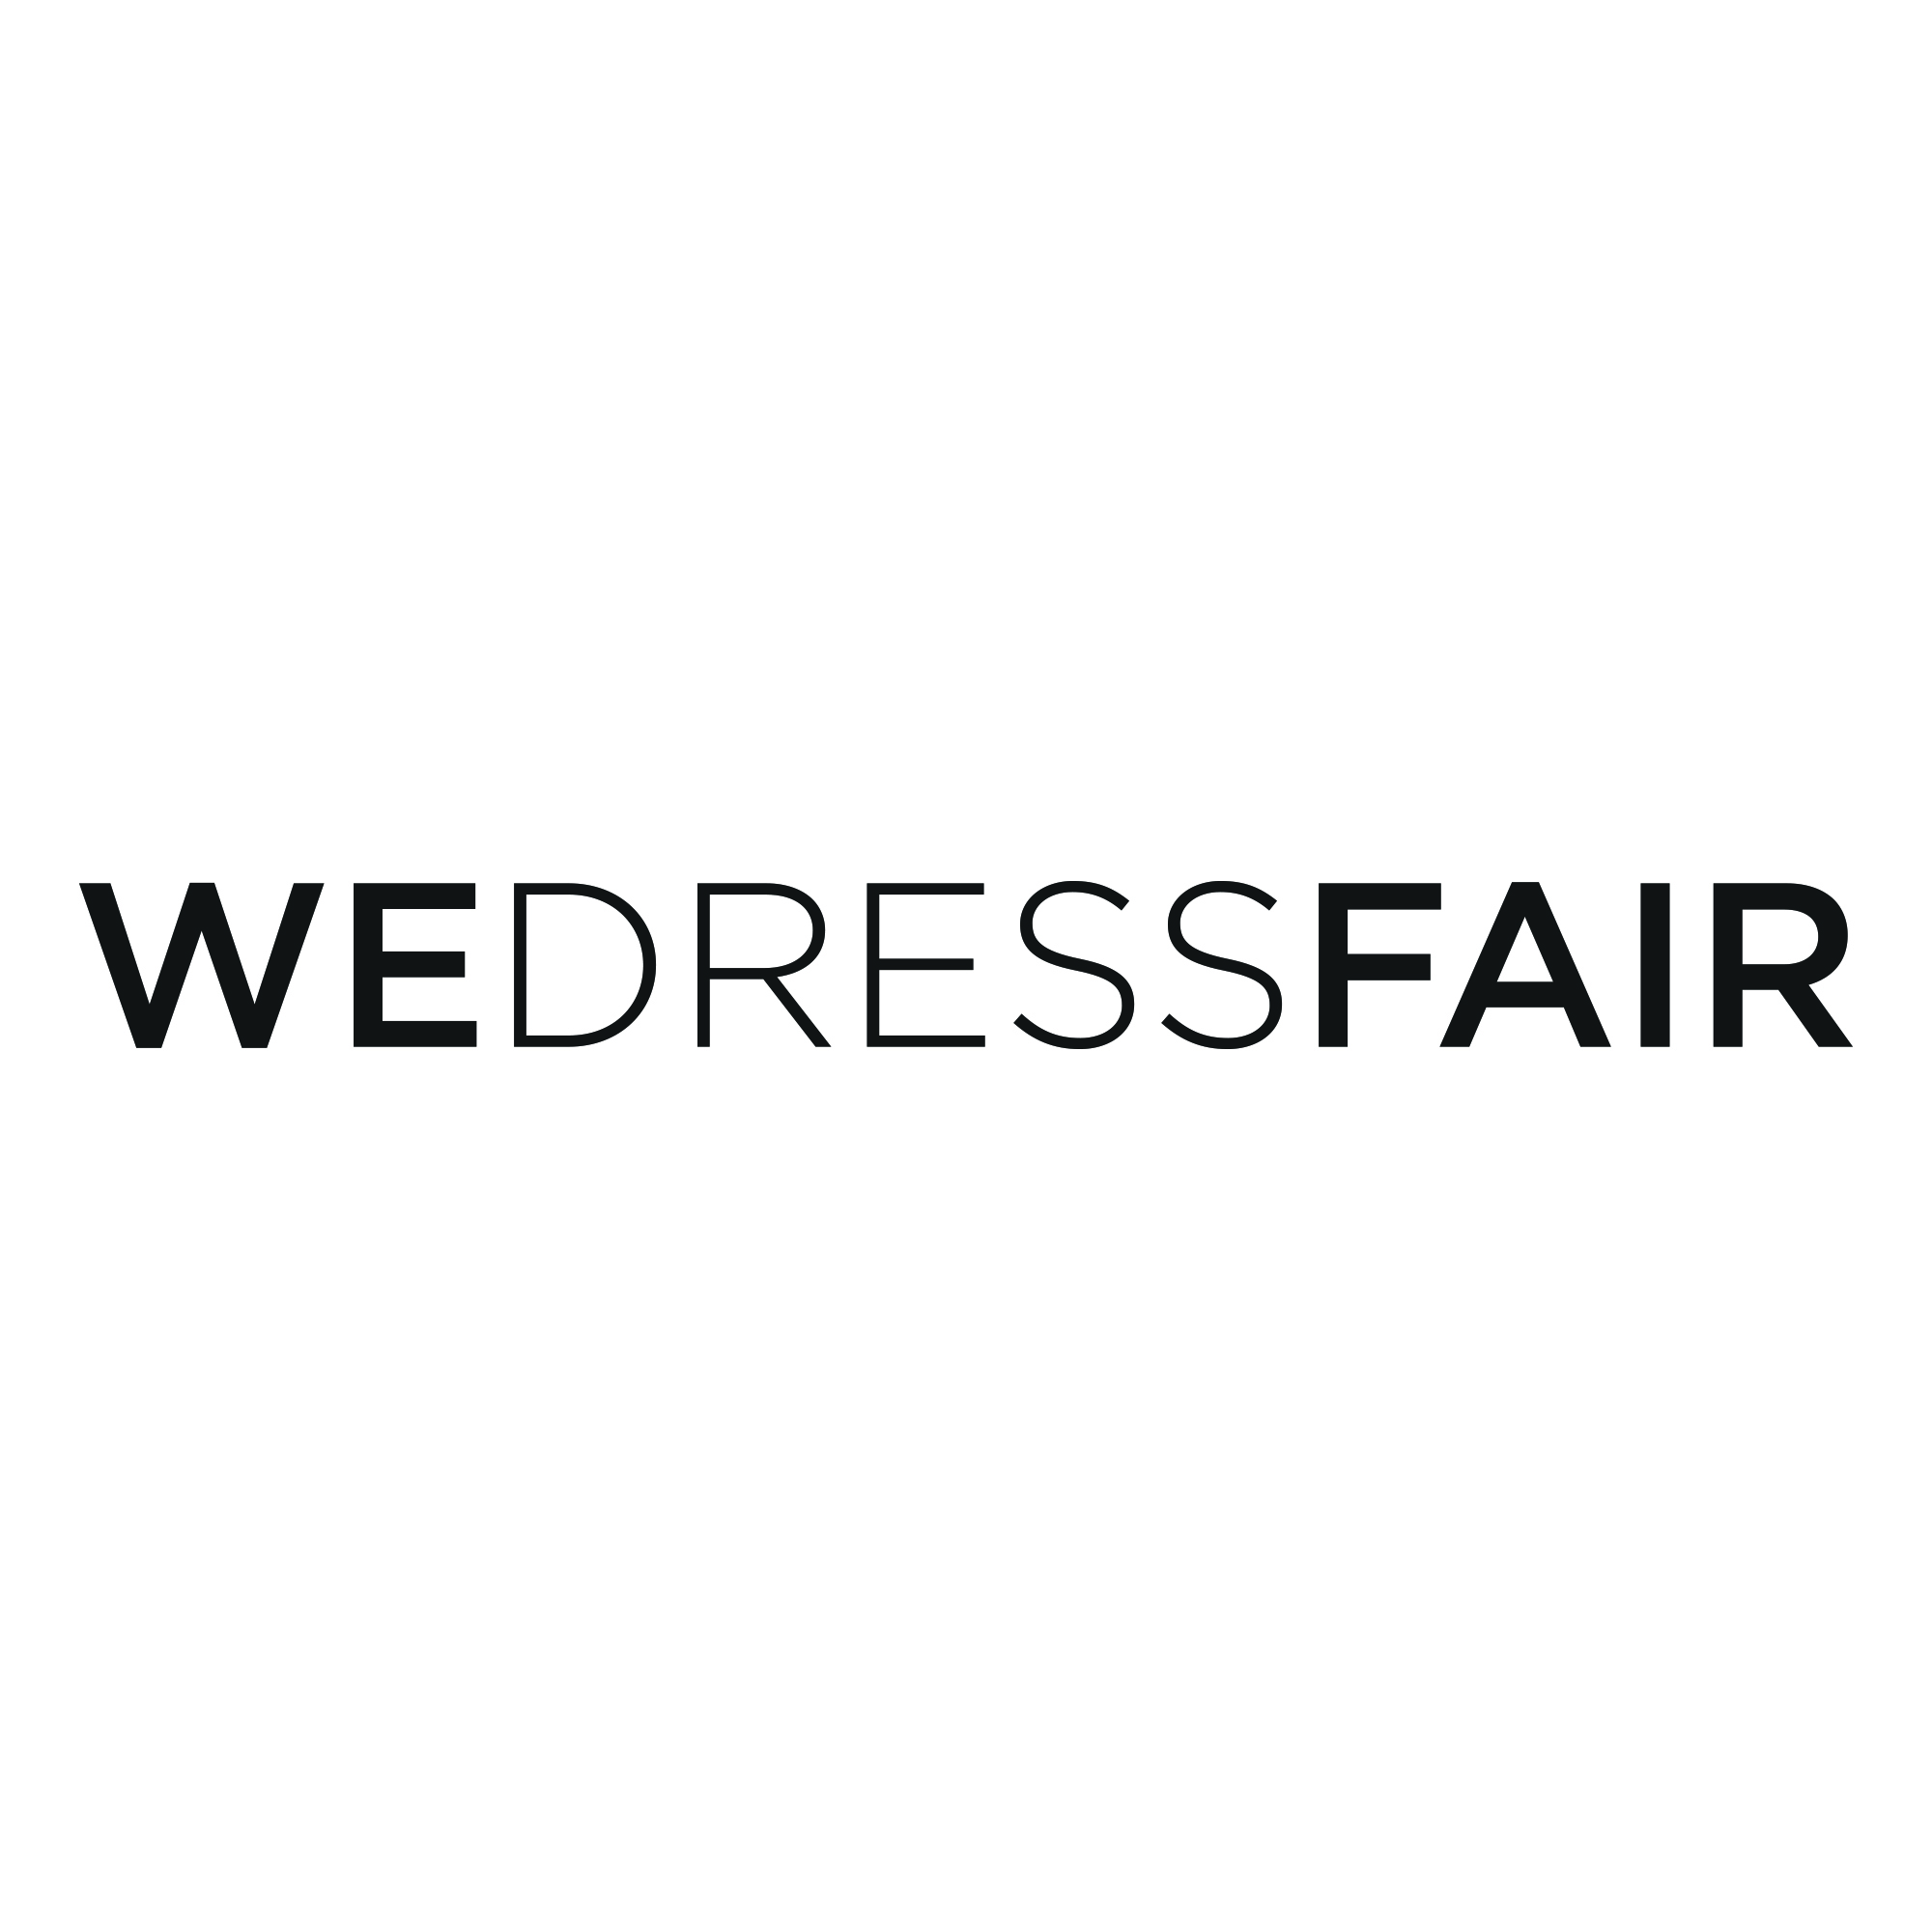 WeDressFair